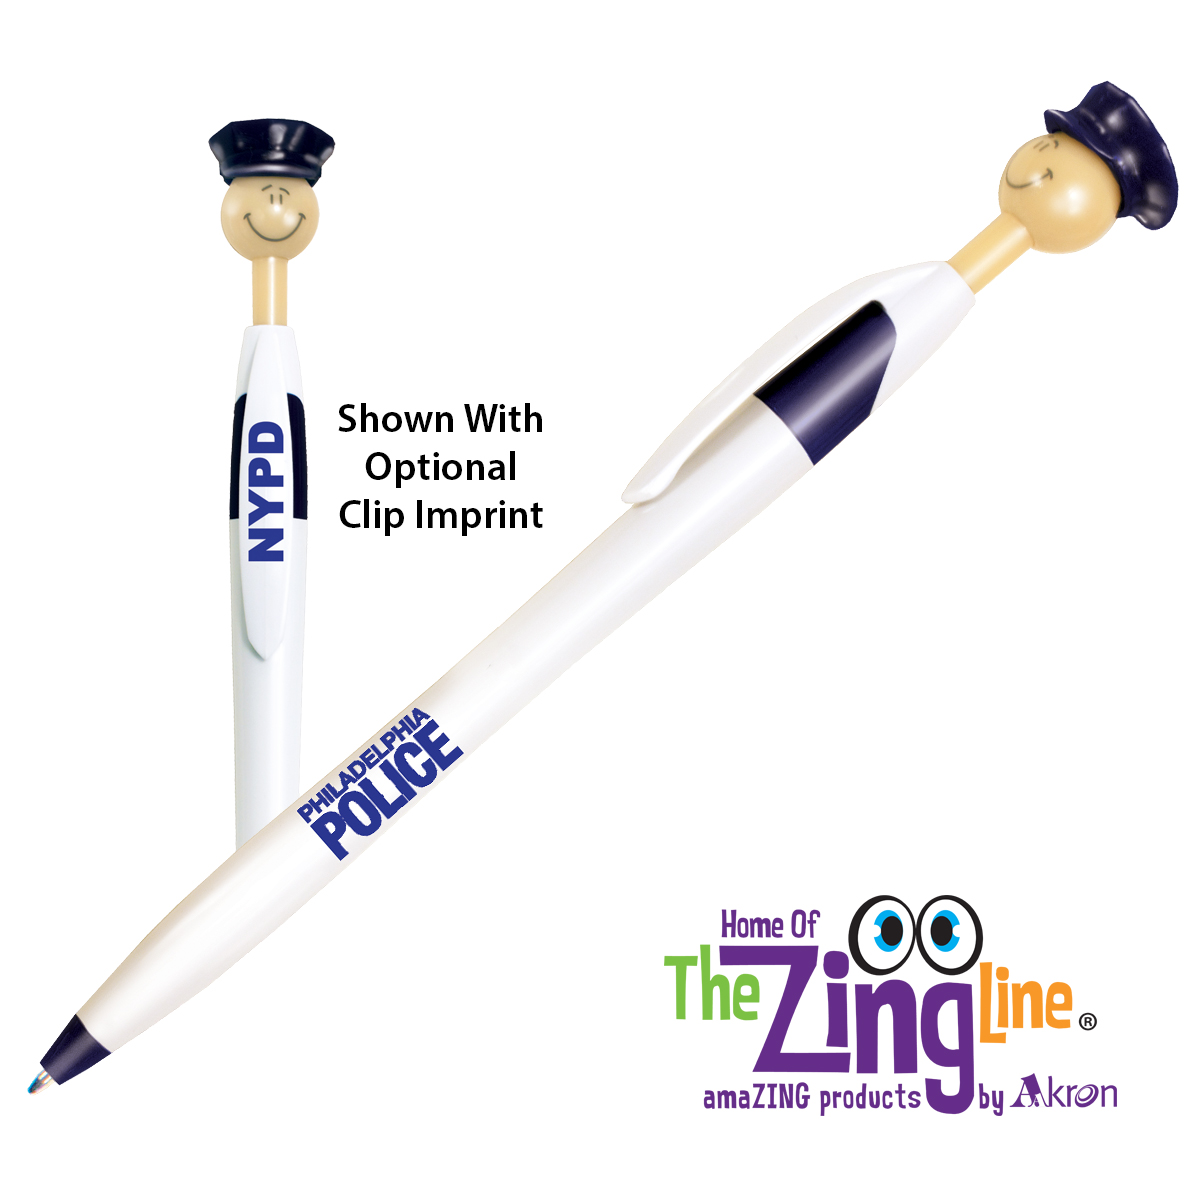 Officer Smilez Pen - Light Tone